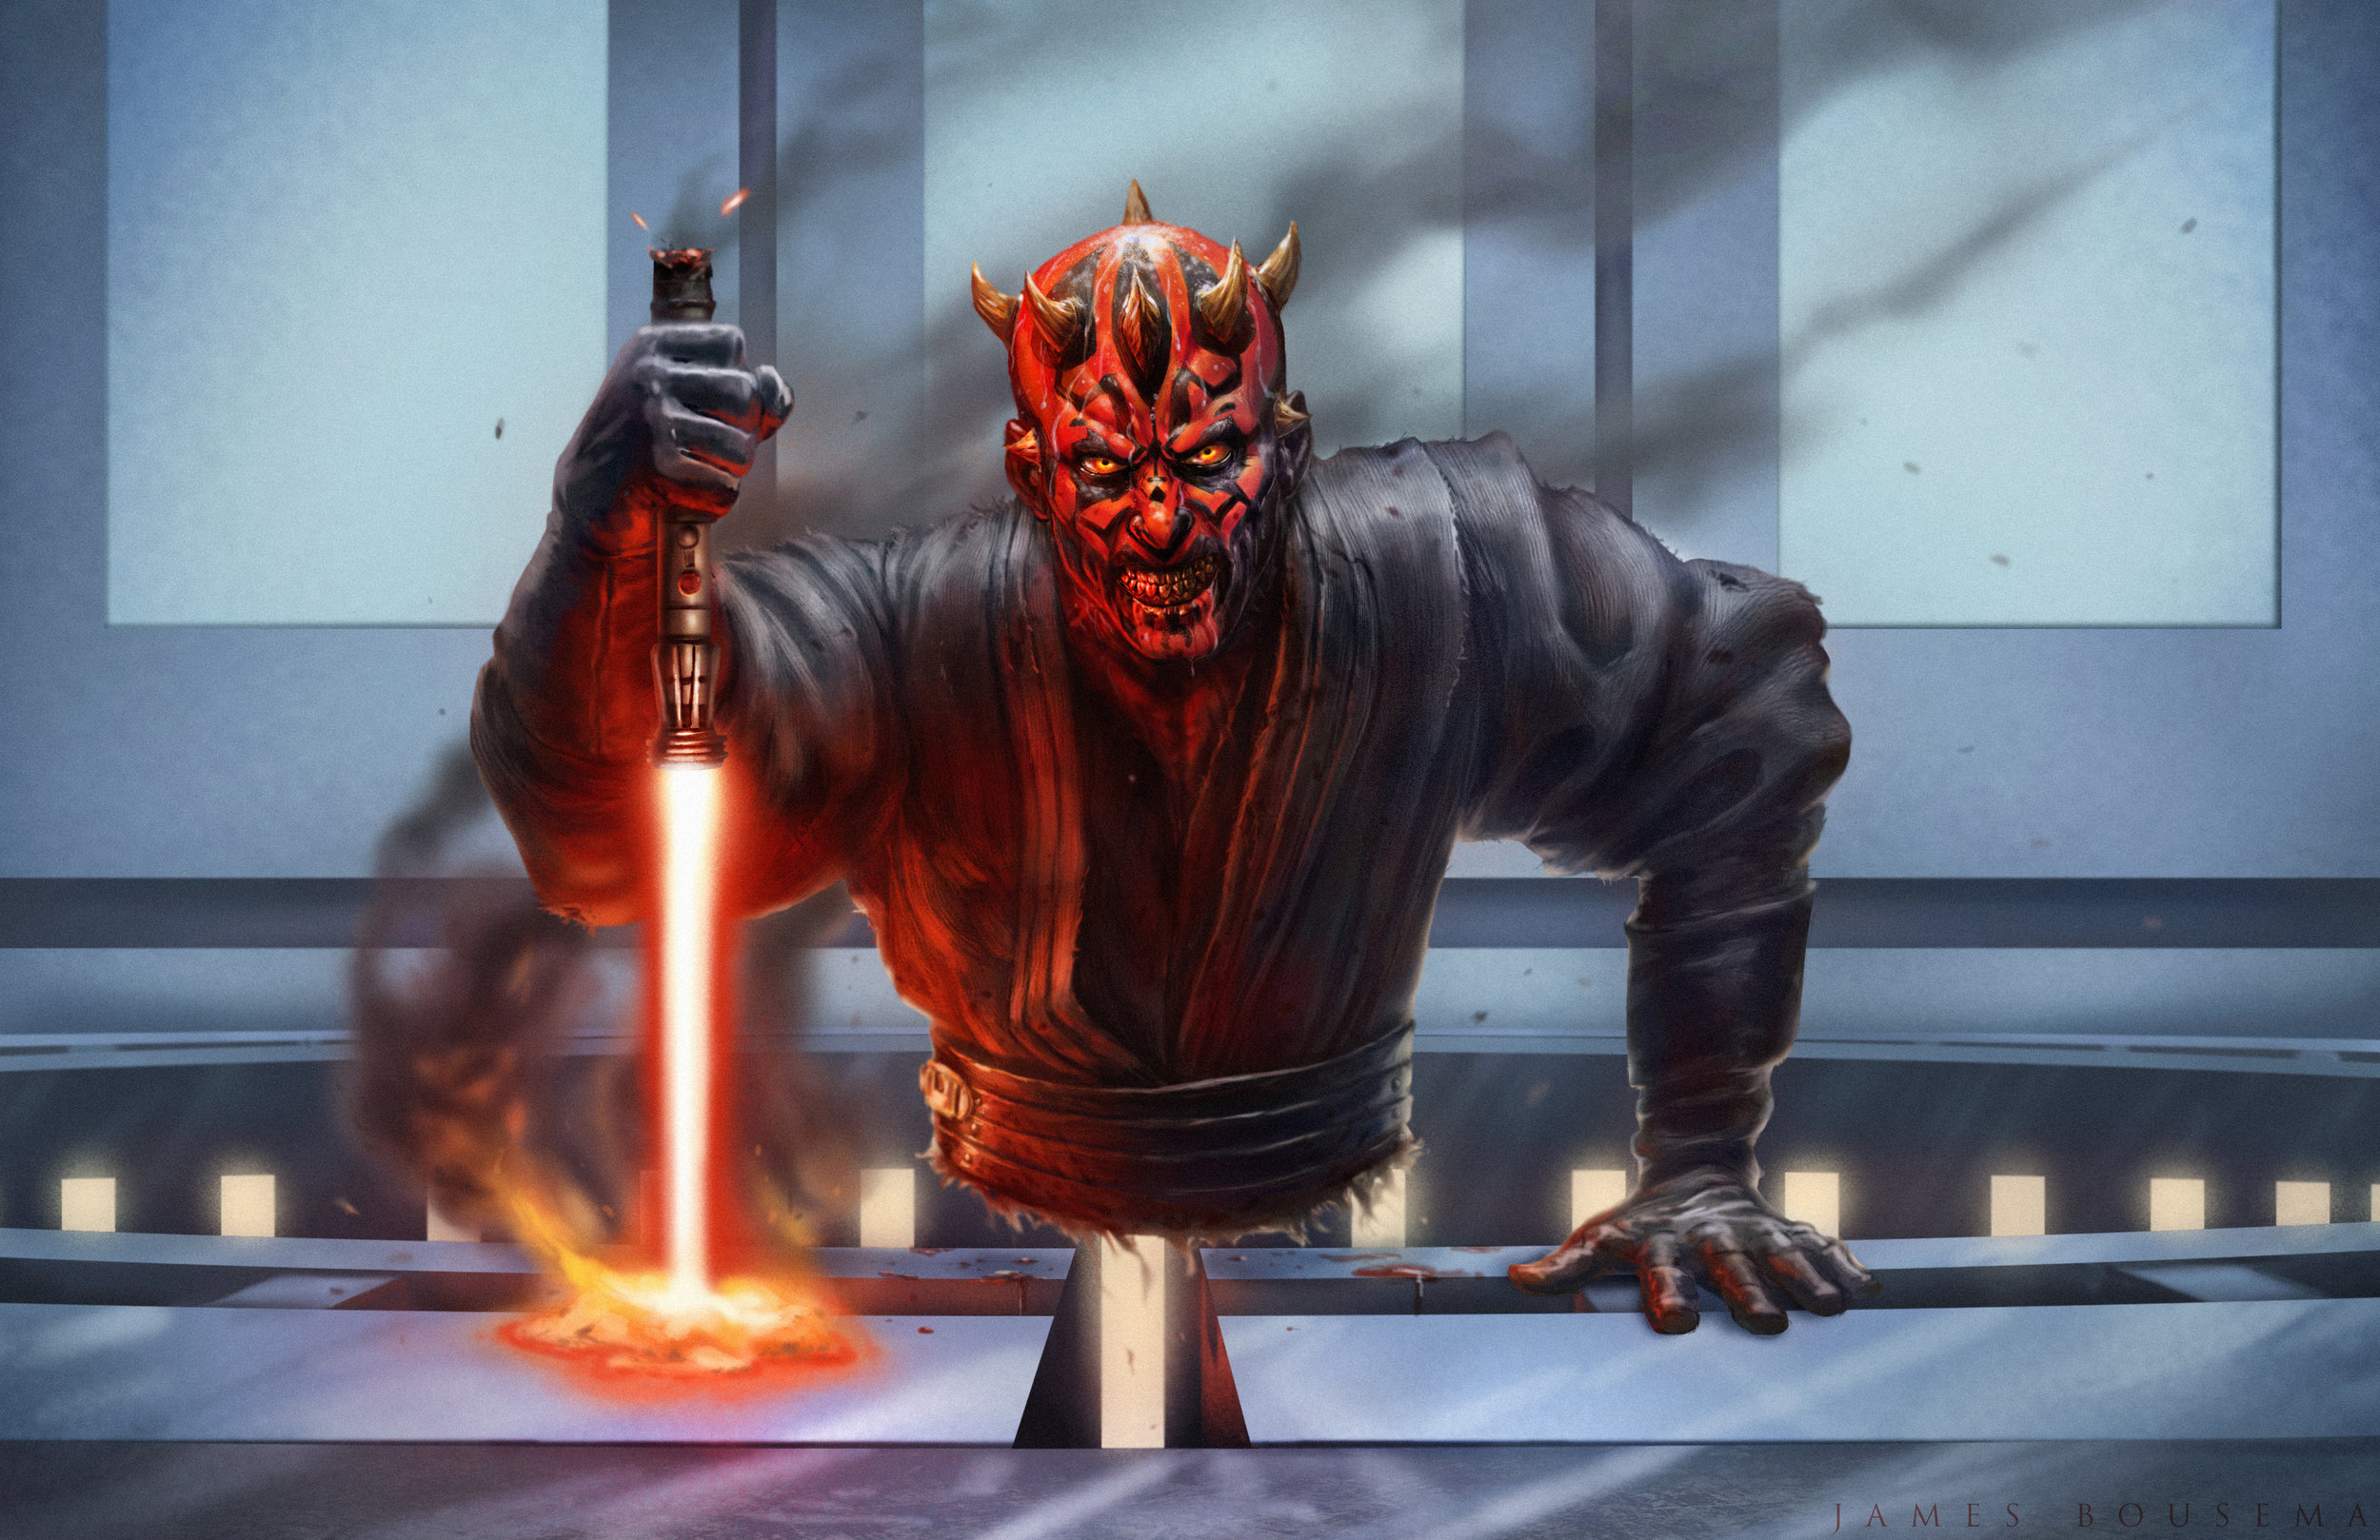 This Sith will not go down without a fight Done in Photoshop CS6